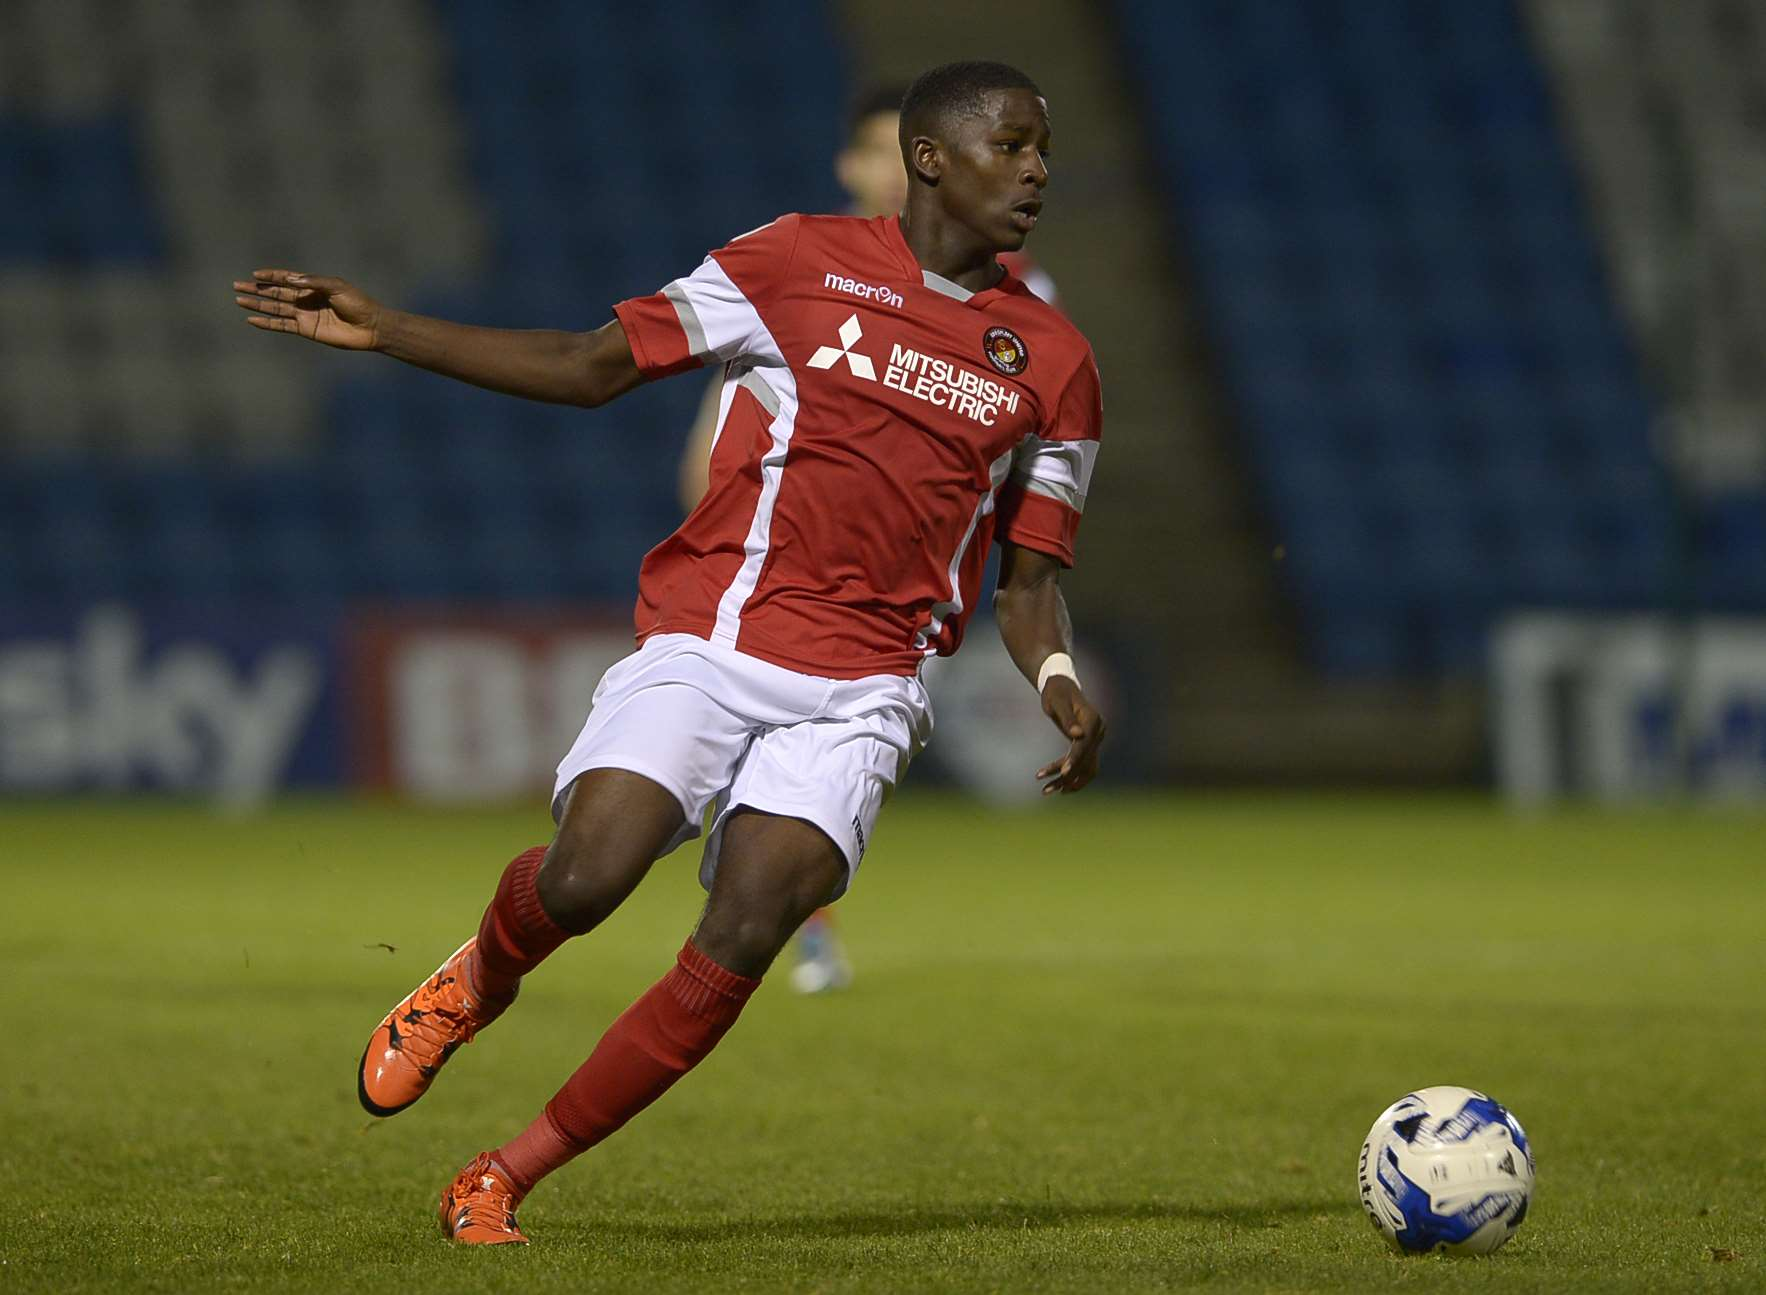 Shilow Tracey in action for Ebbsfleet United's under-18 side Picture: Barry Goodwin